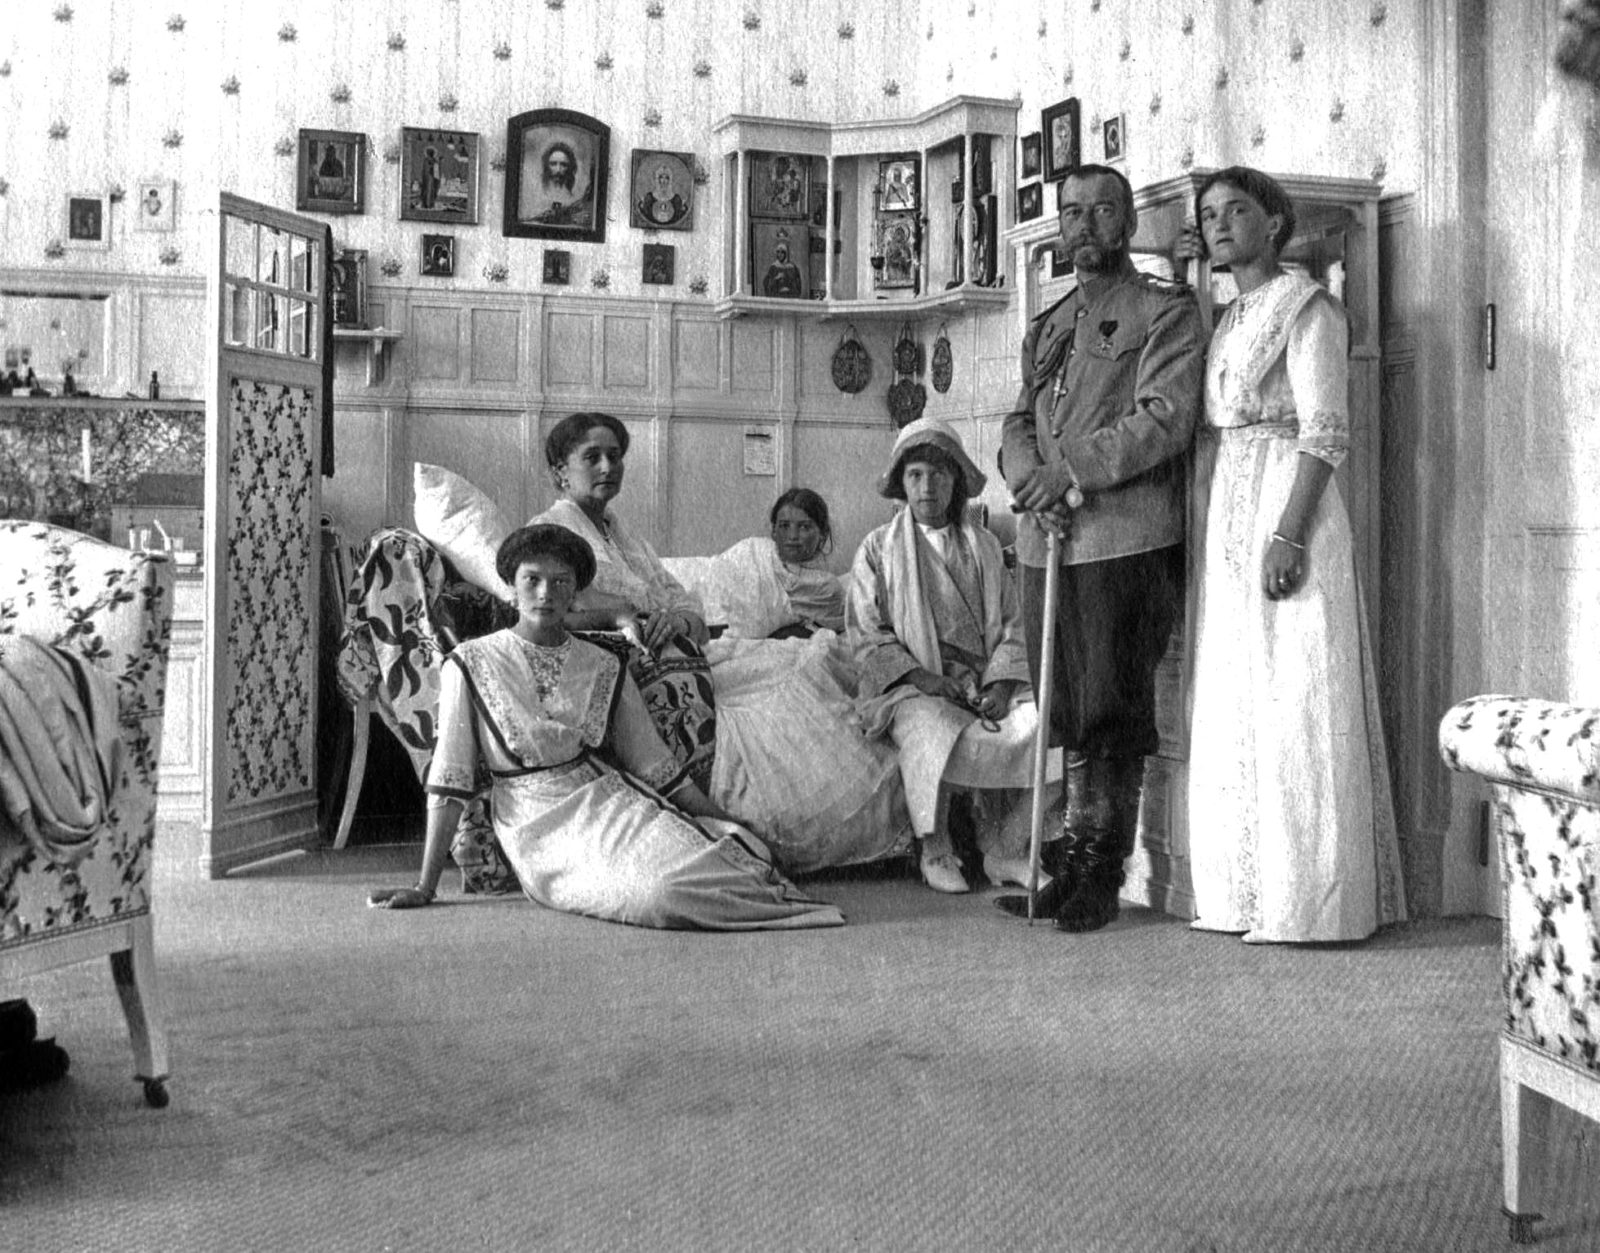 Nicholas II with his family, Livadia, 1913.